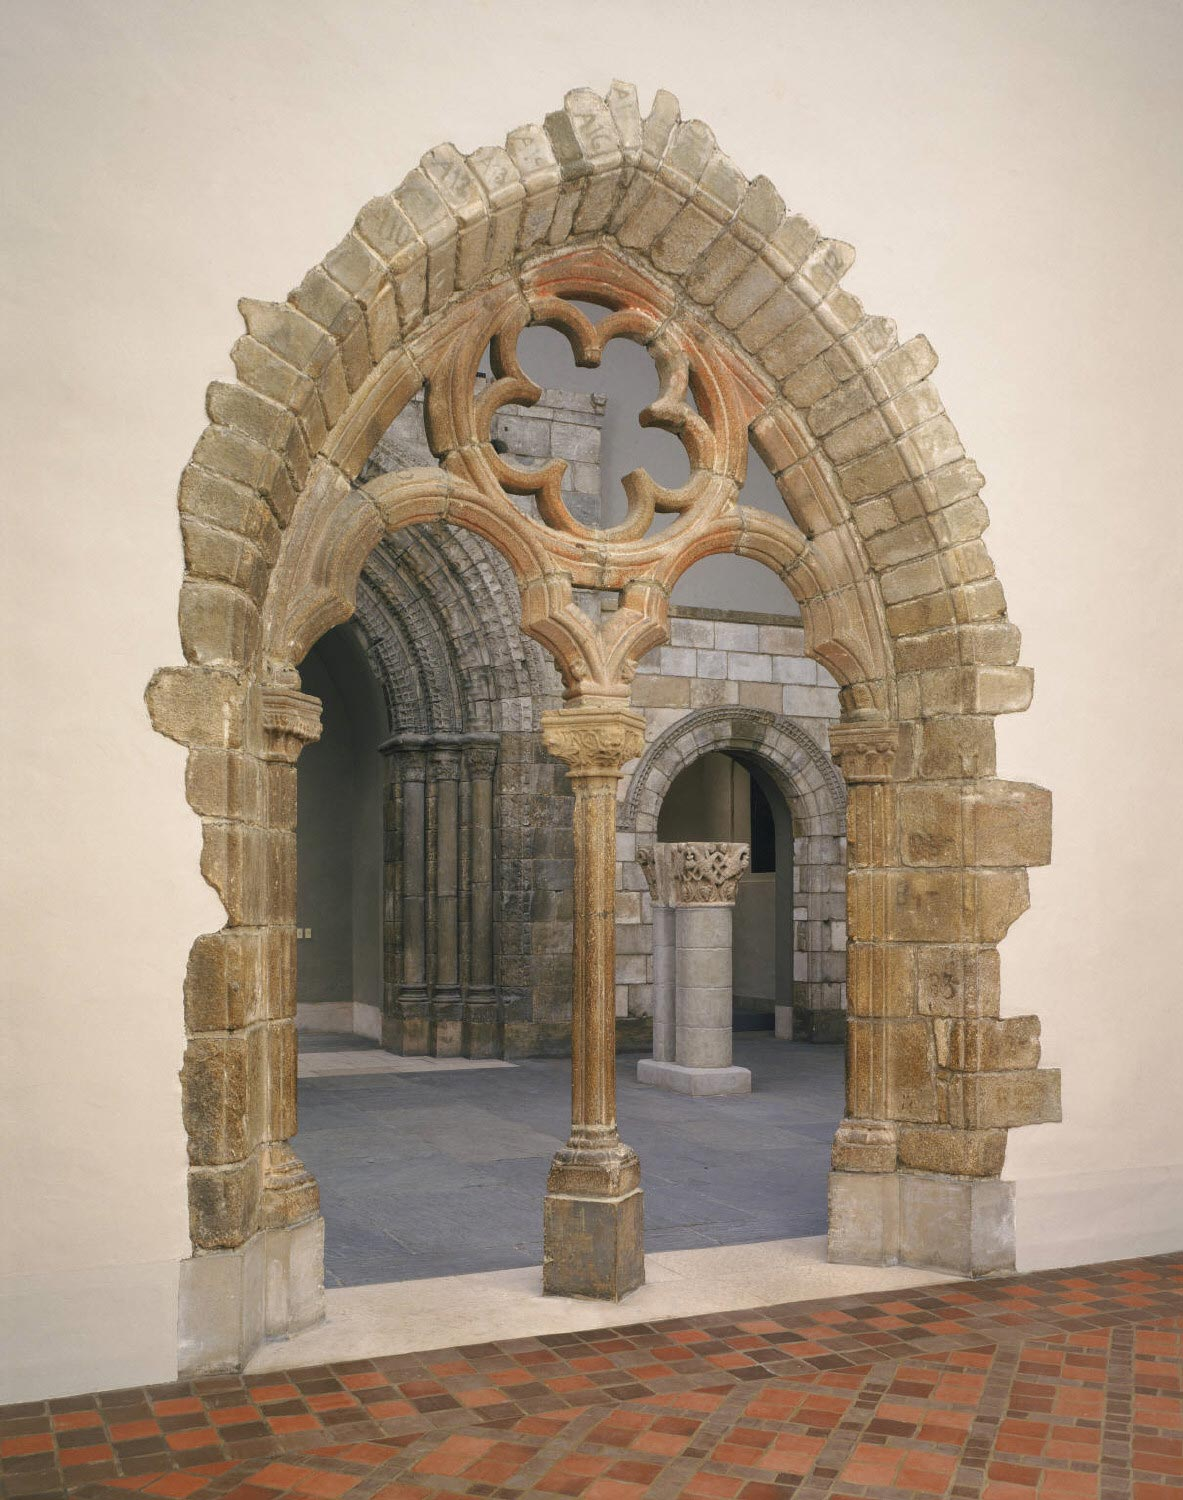 Arched Entrance, from the Chapter House of the Carmelite Convent Les Grands Carmes des Arènes